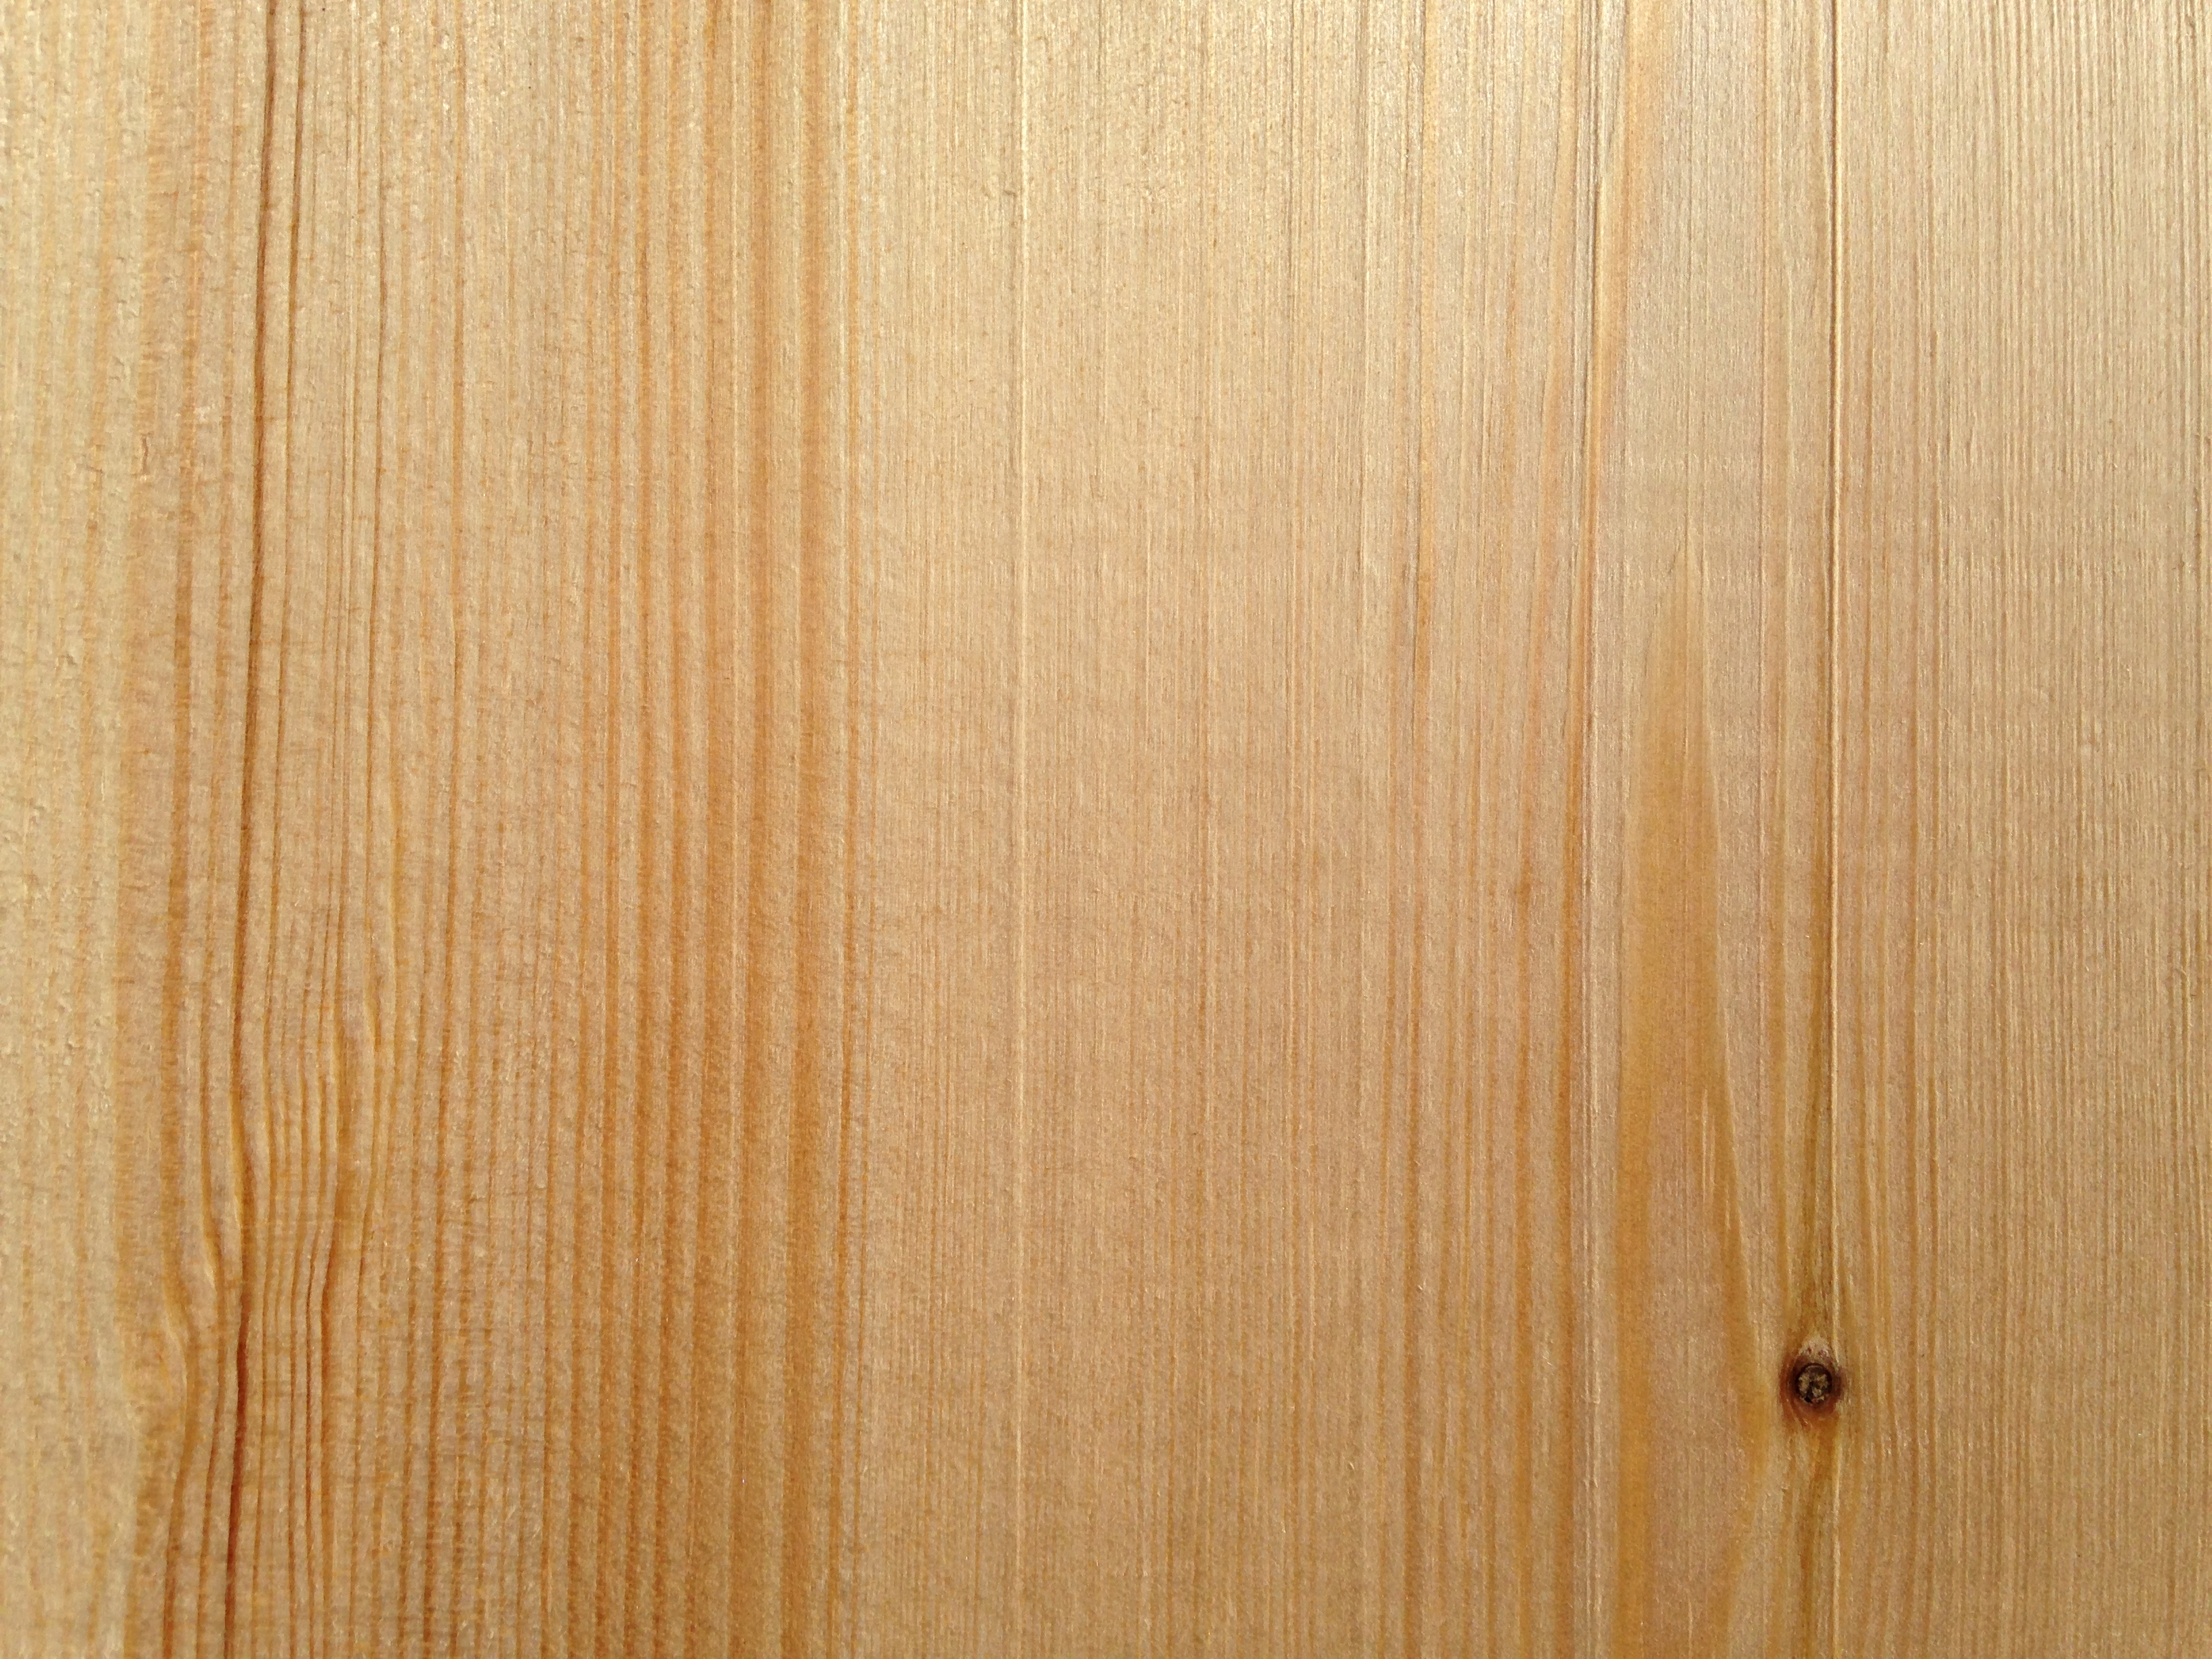 European redwood timber merchants uk timbersource online Pine tree timber